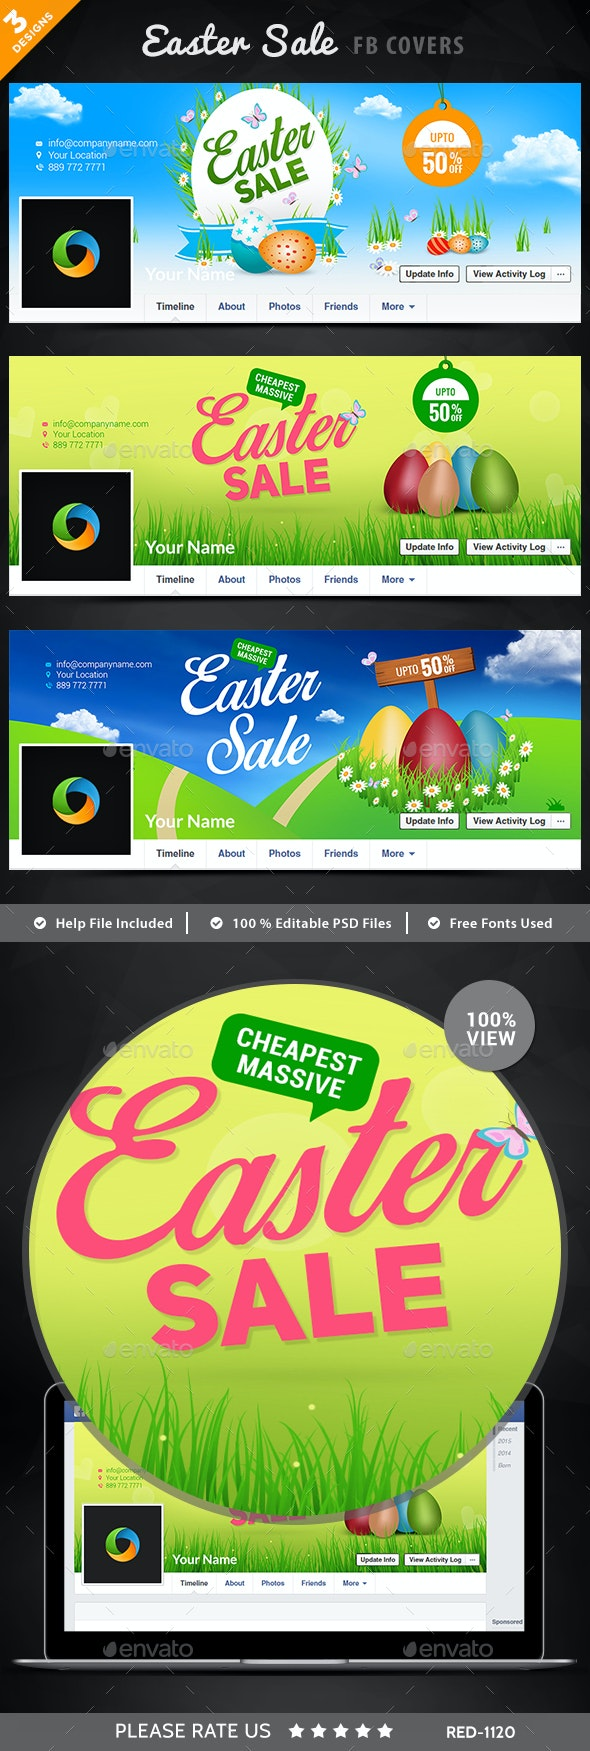 Easter Sale Facebook Covers - 3 Designs - Imagese Included - Facebook Timeline Covers Social Media